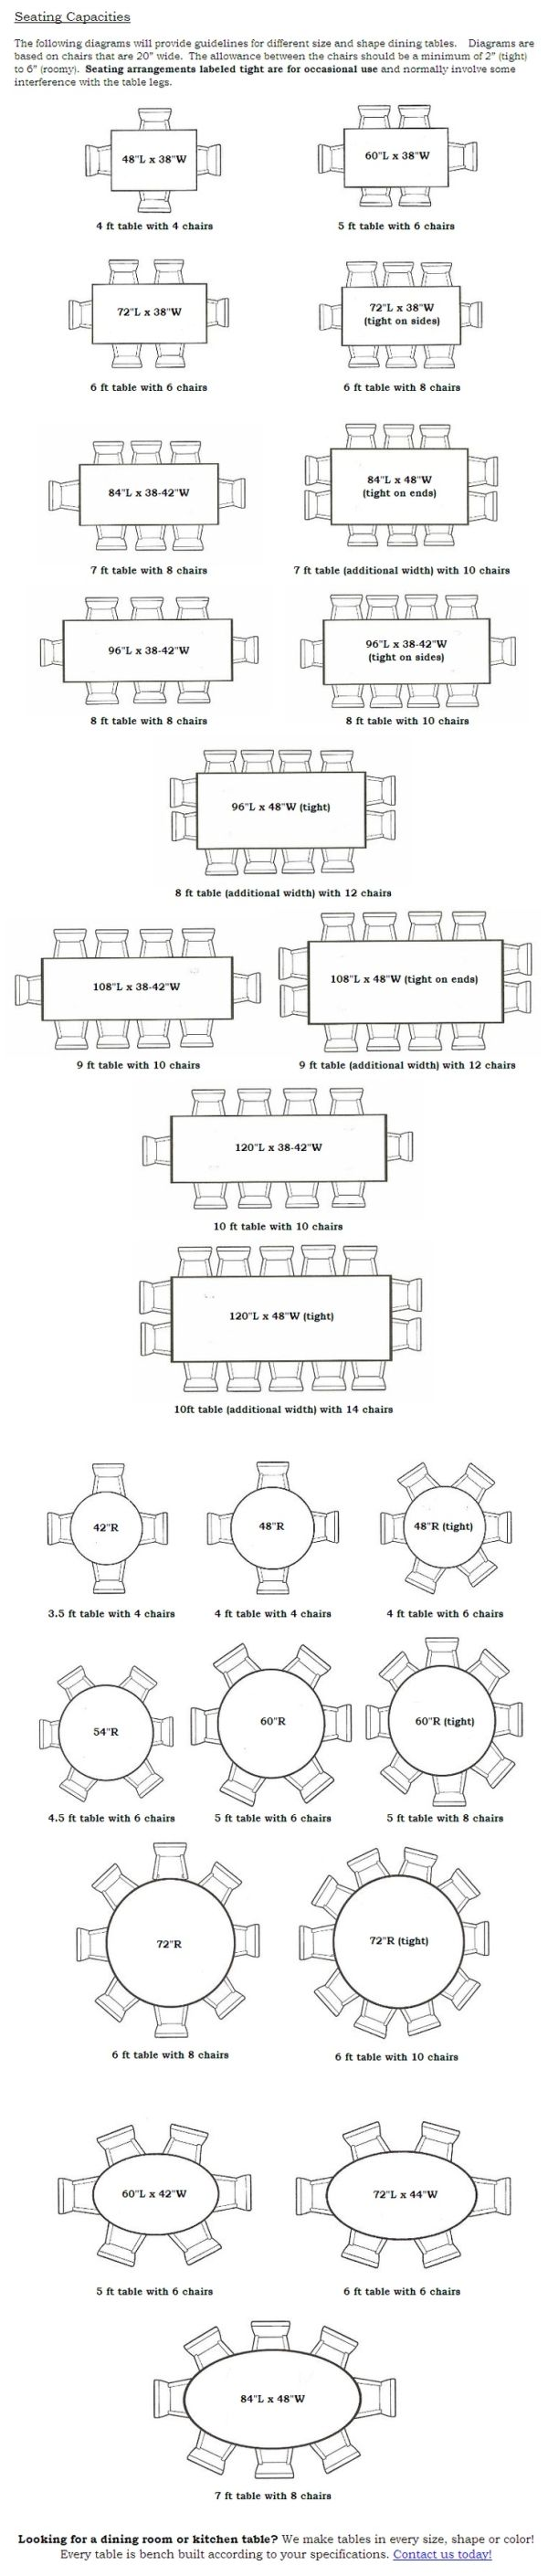 Dining Table Seating Capacities Chart By Size And Shape Reference Guide